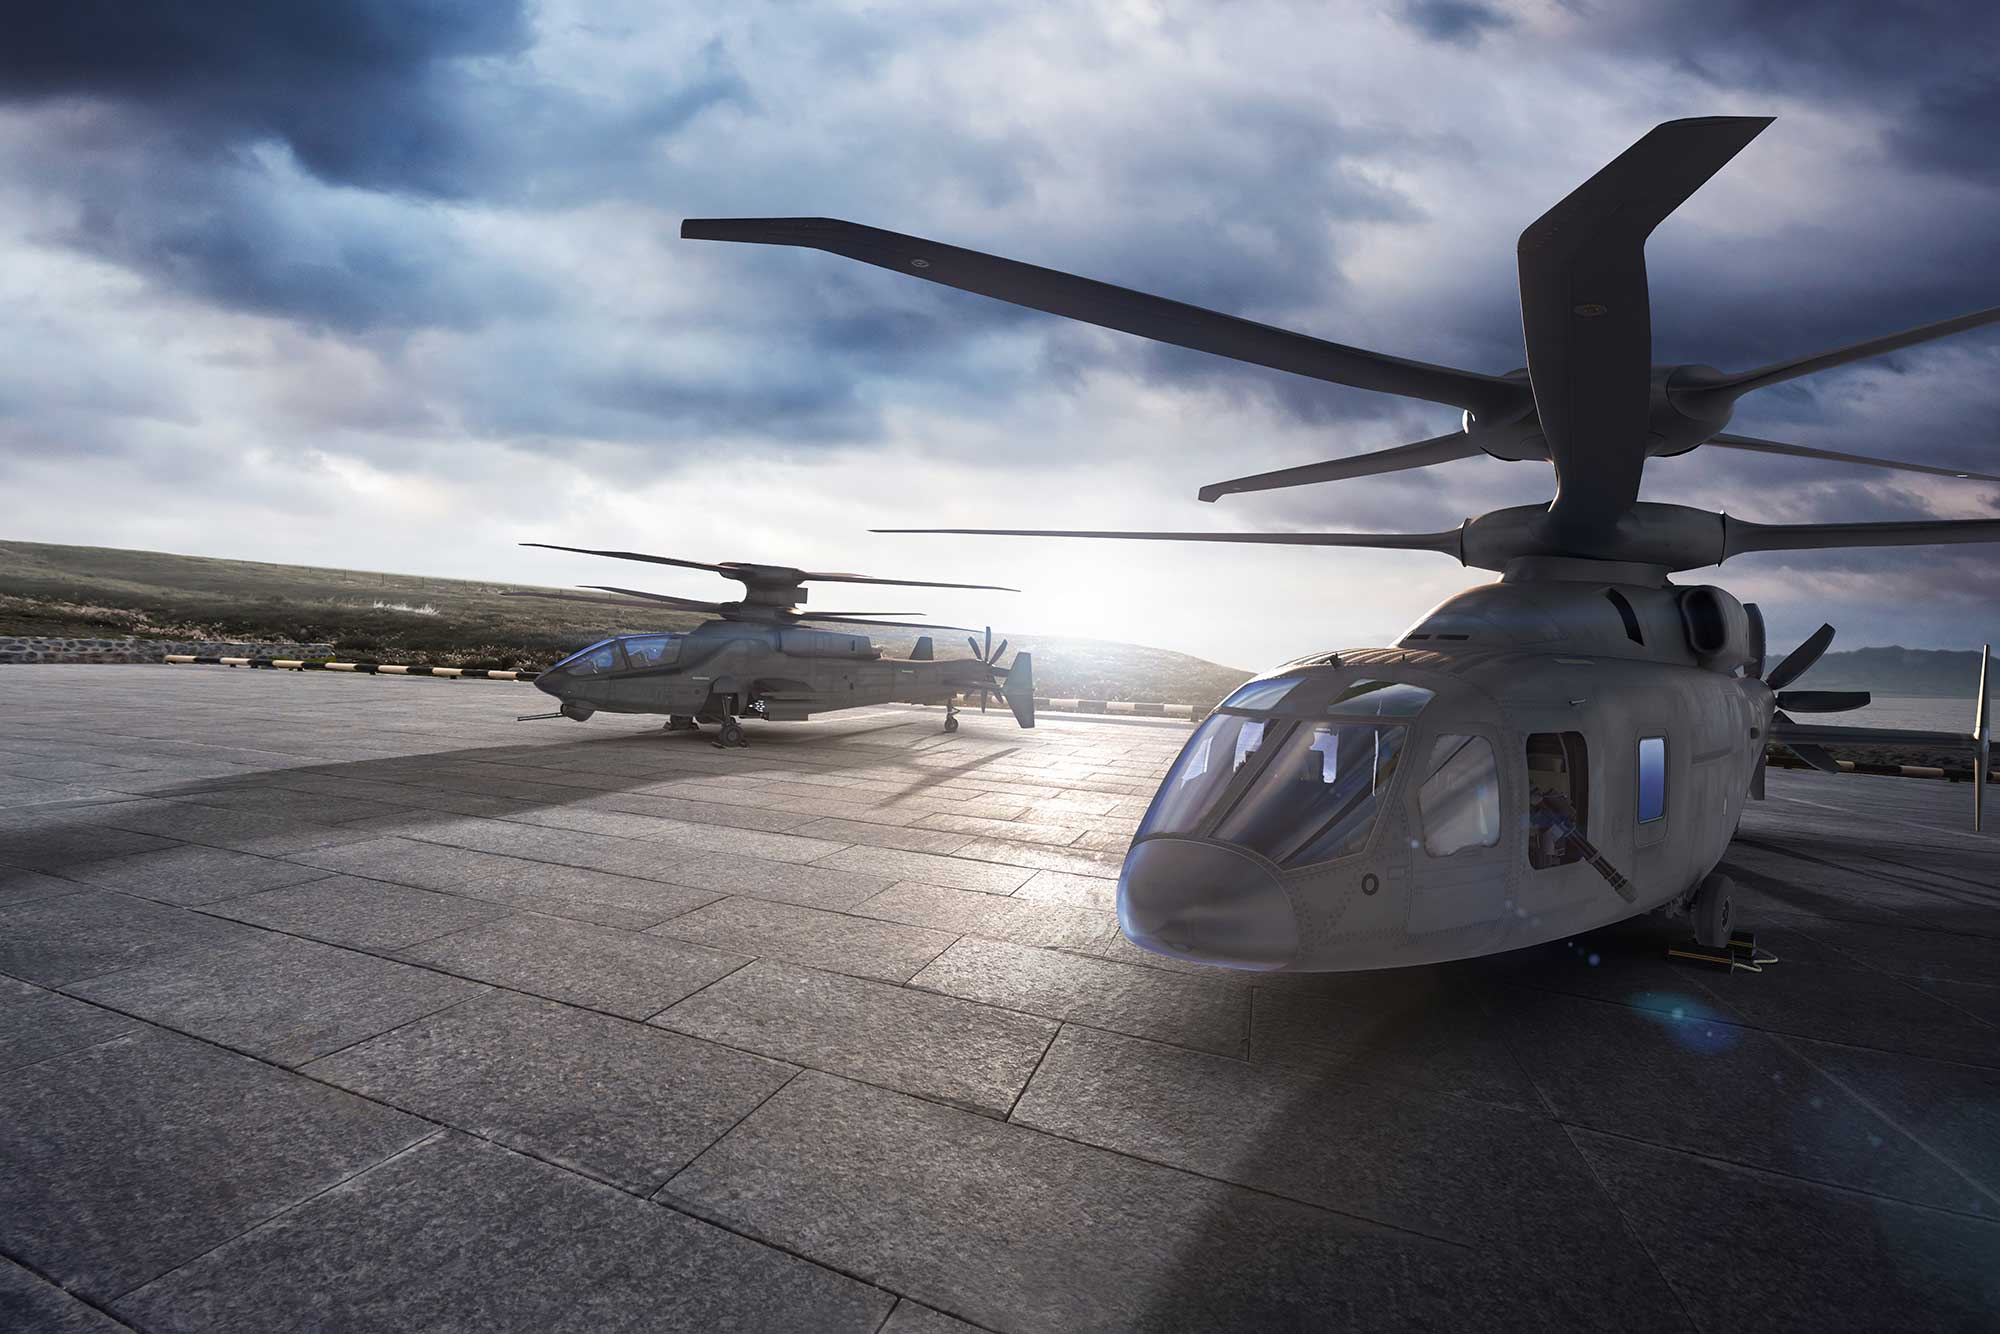 The U S  Army Wants to Replace Its Helicopters With These - Bloomberg